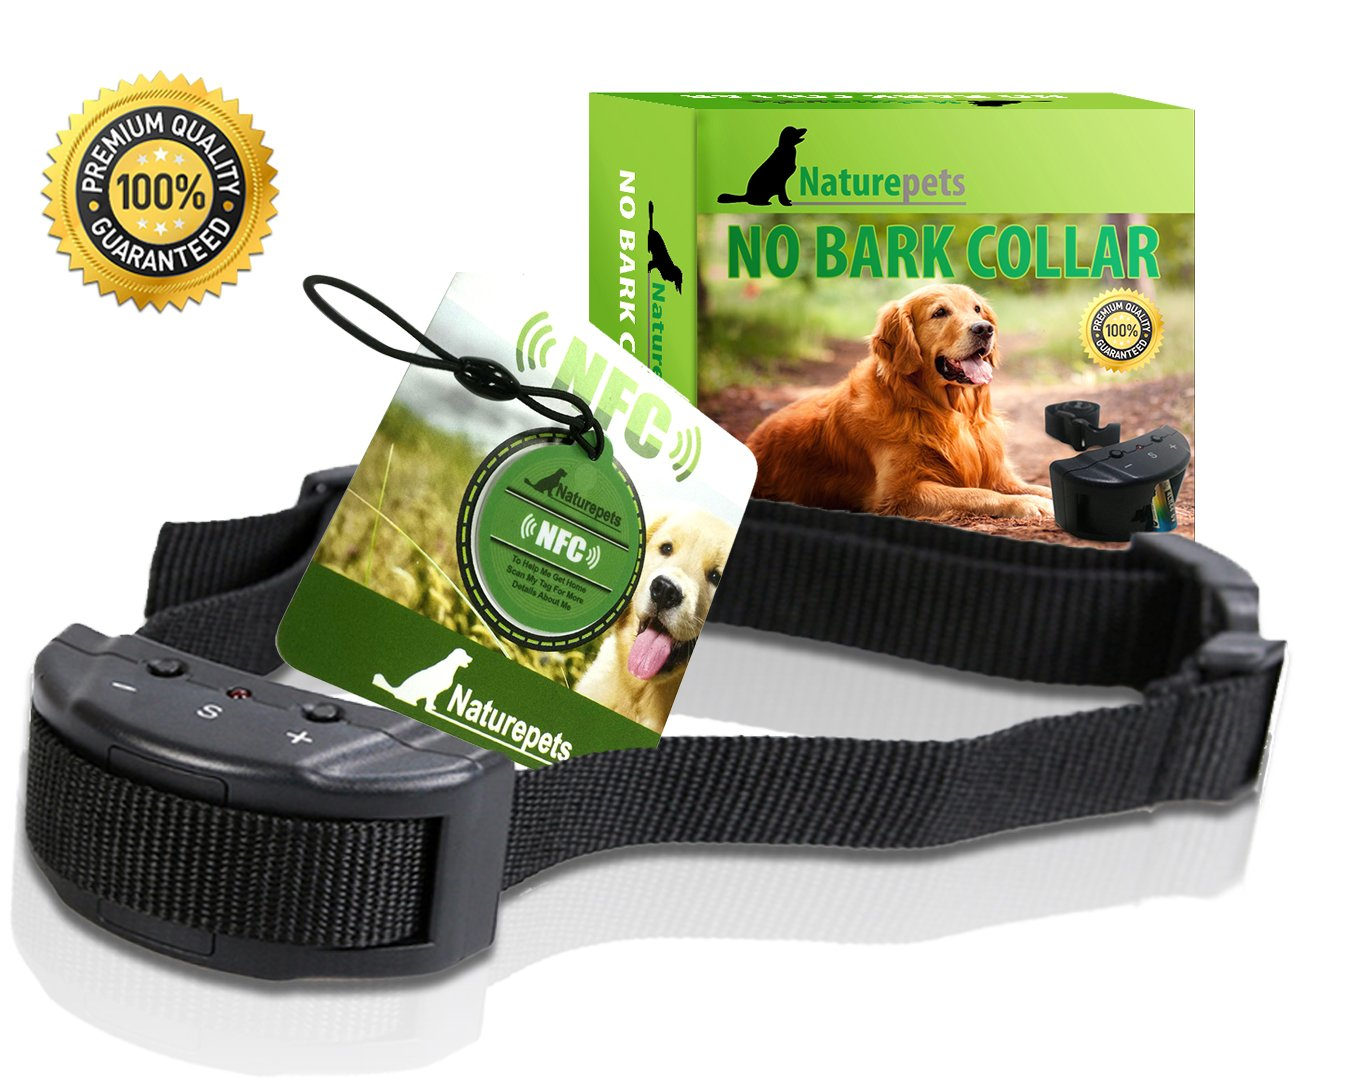 Advanced No-bark Collar By Naturepets - No-harm Dog Training Collar with 7 Sensitivity Adjustable Levels - NFC Dog Tag and Ebook Included As Bonus Gifts - Perfect Christmas Gift - Money Back Guarantee